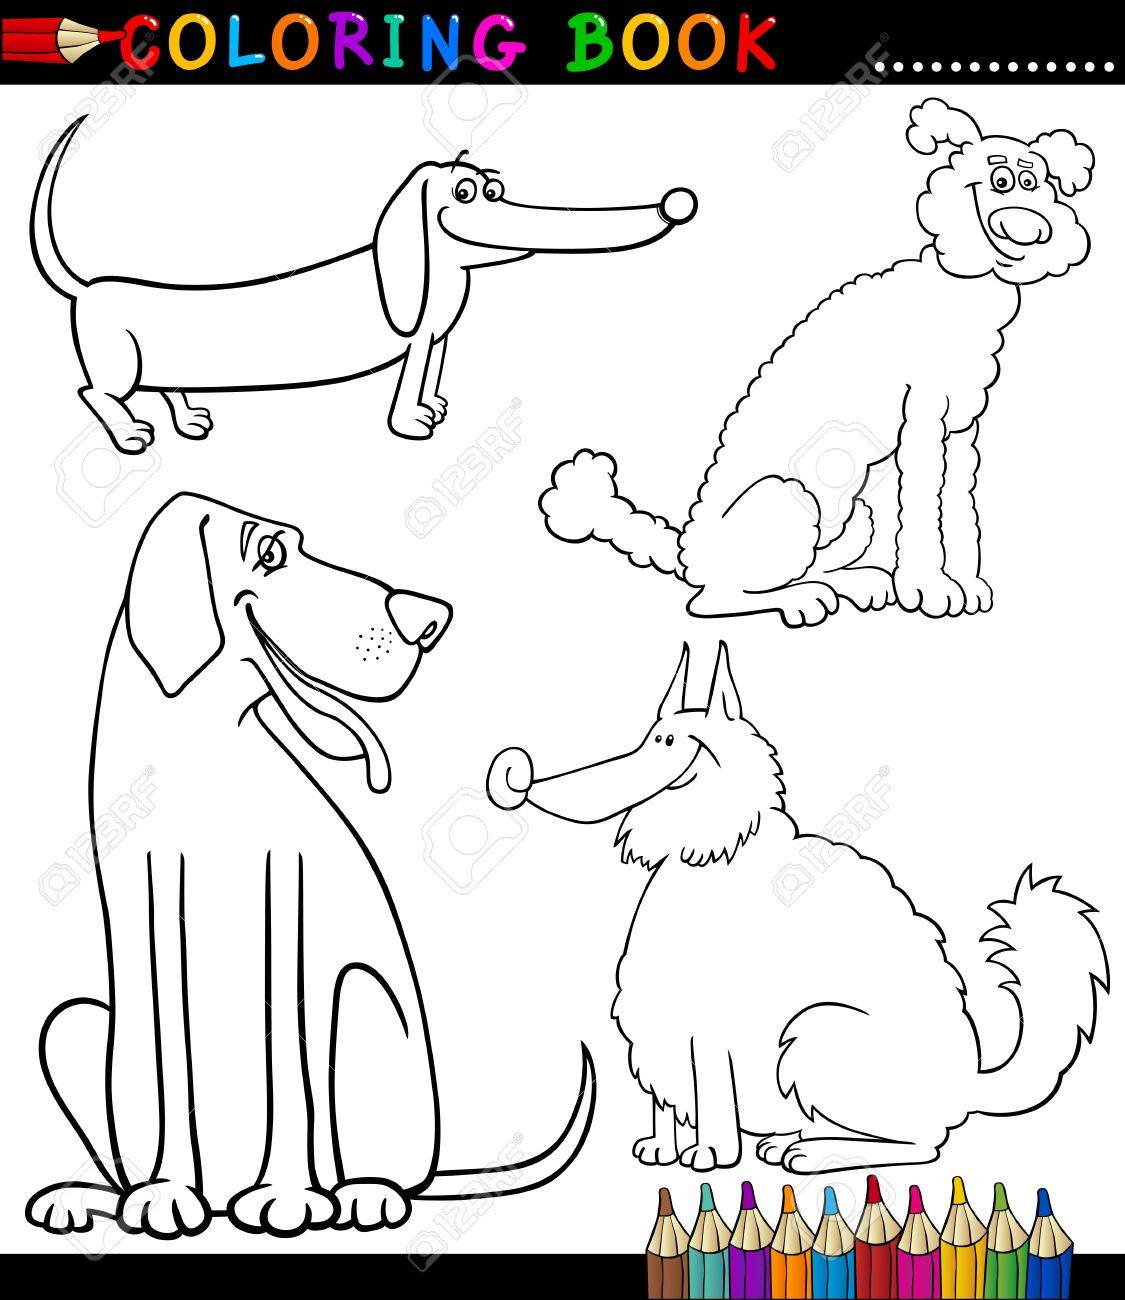 Coloring Book or Coloring Page Black and White Cartoon Illustration of Funny Purebred or Mongrel Dogs Stock Vector - 17120401